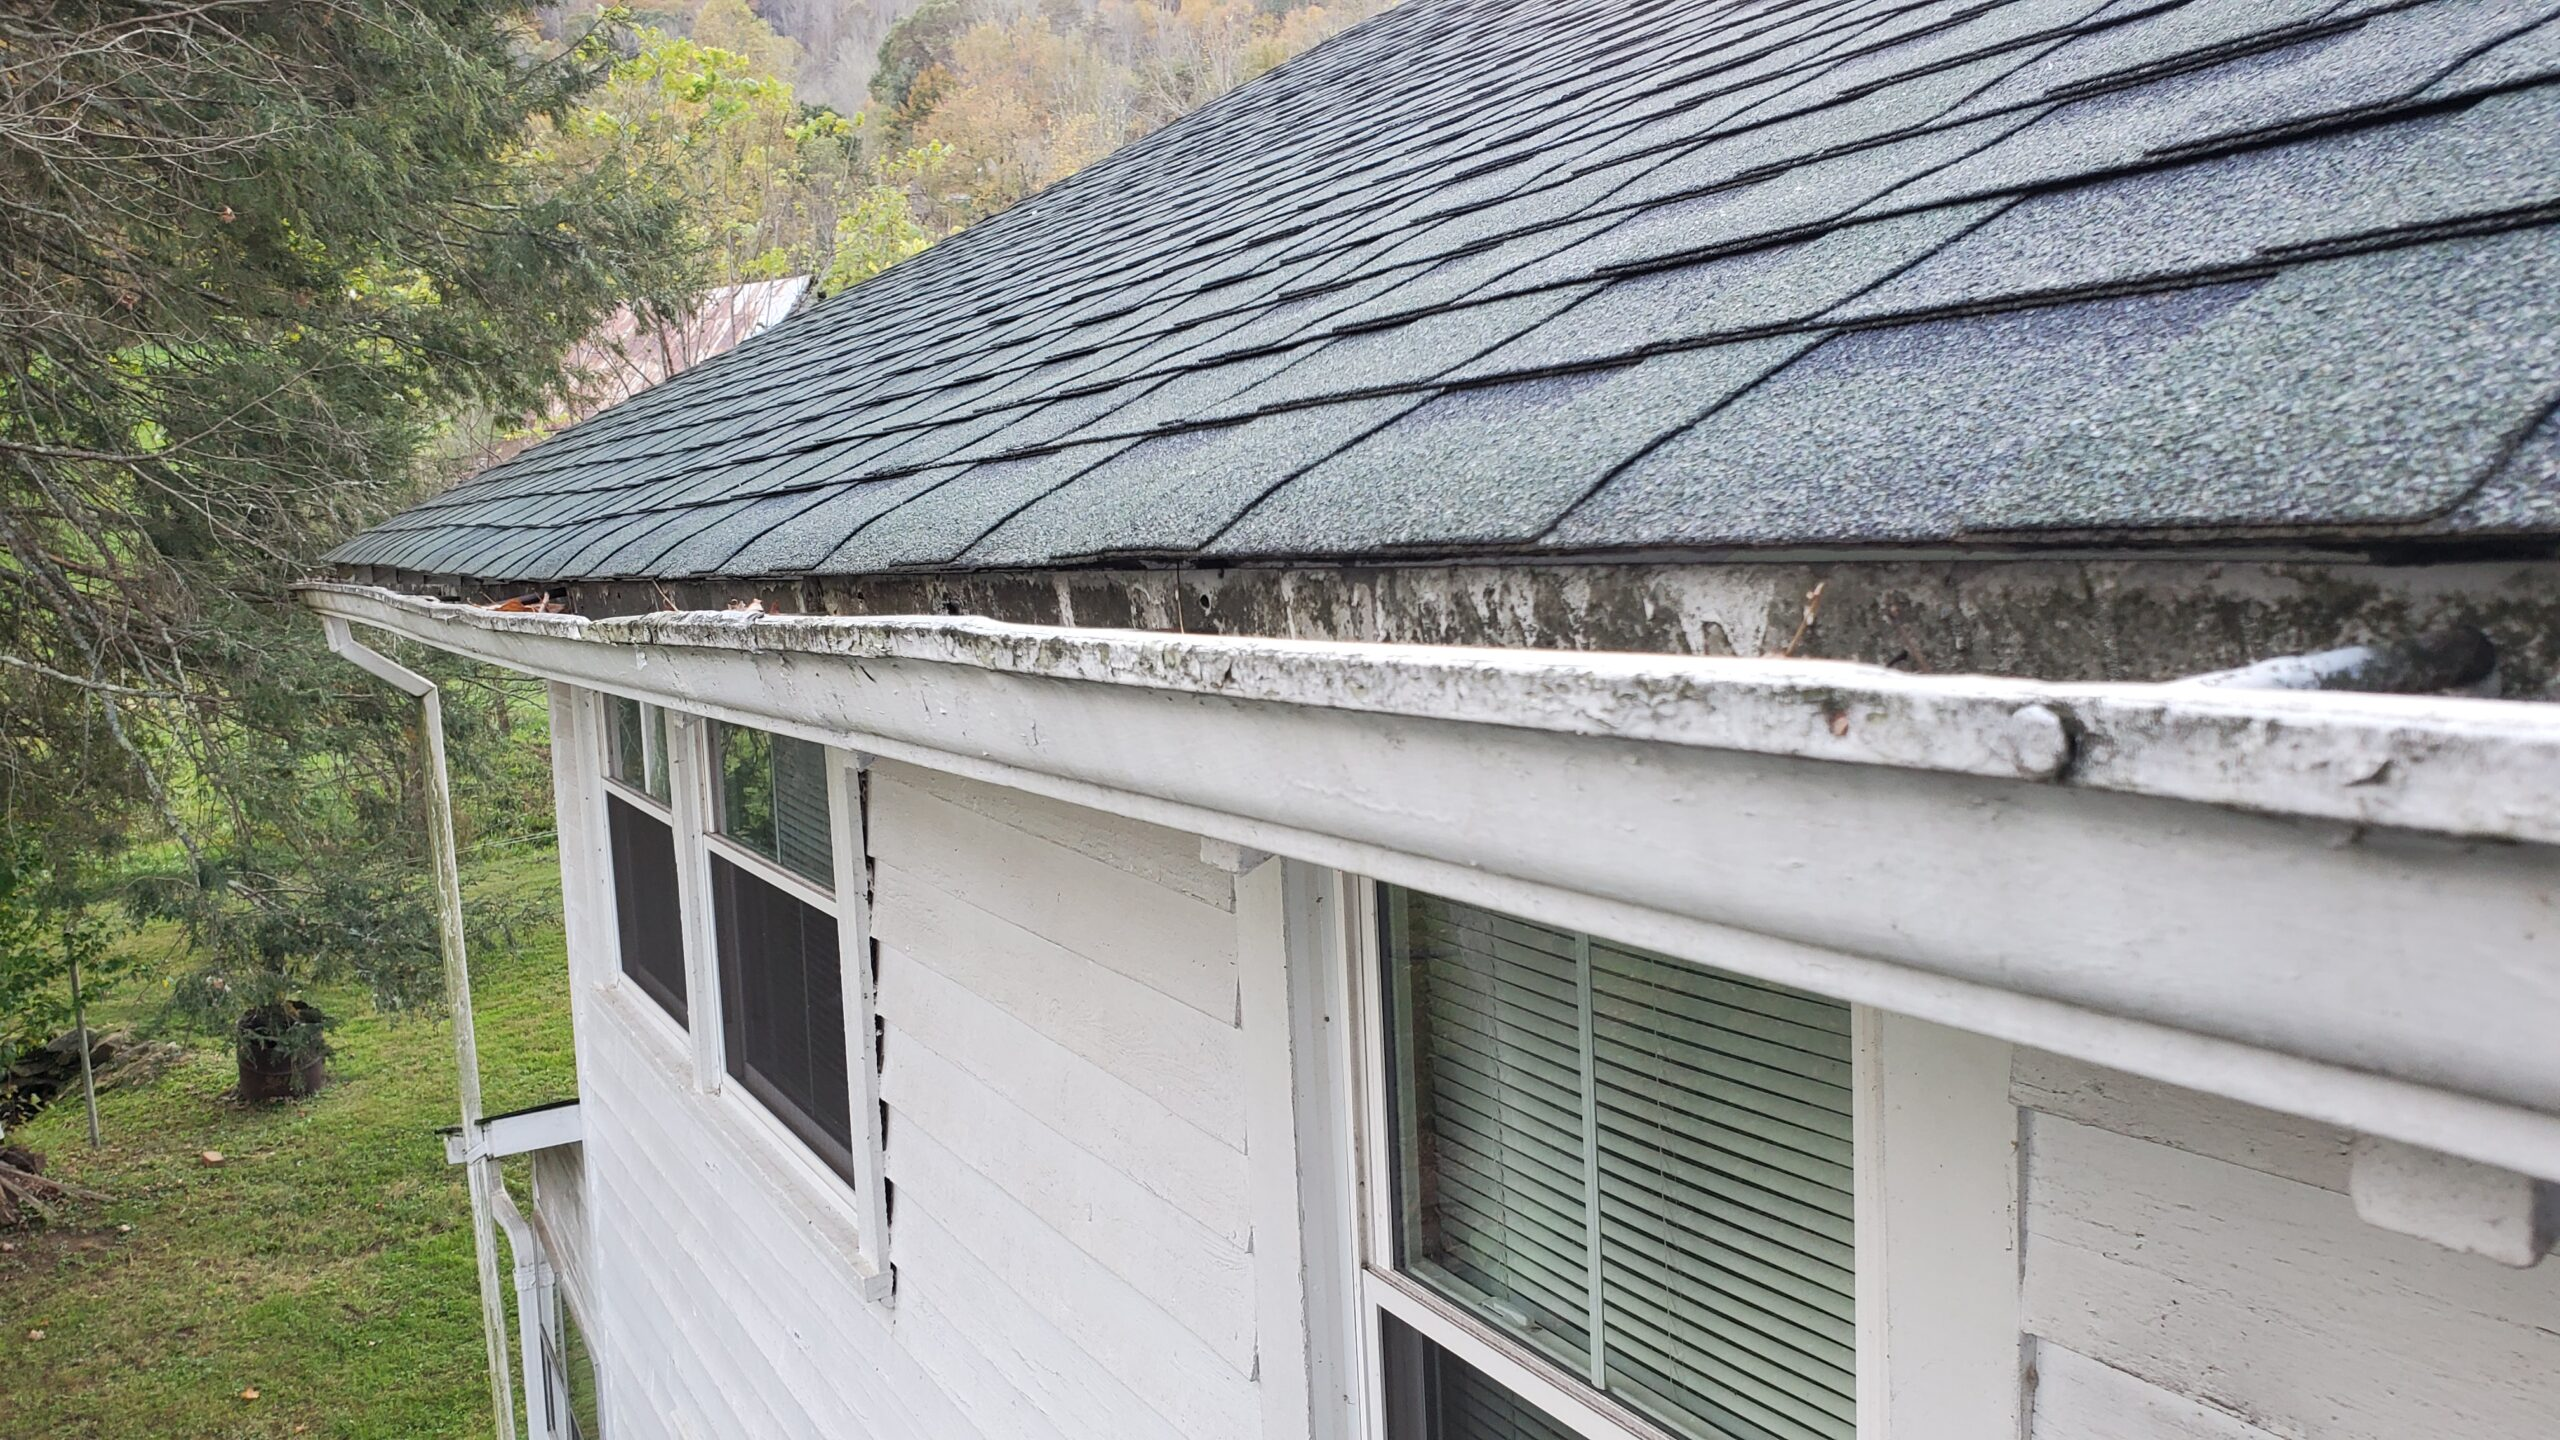 Roof in desperate need of gutters